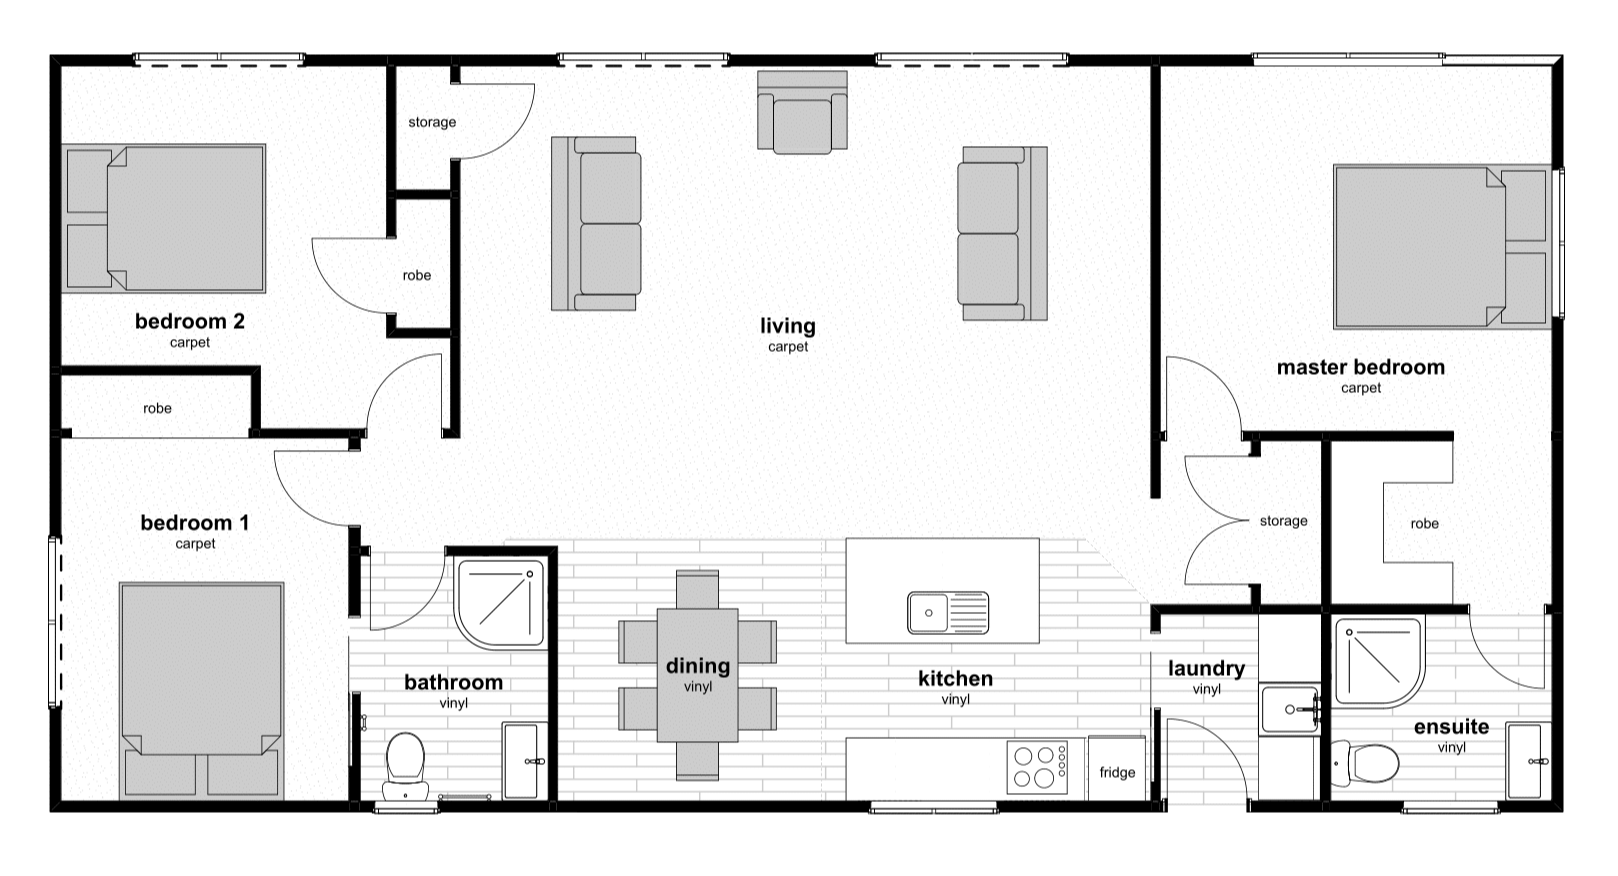 3 bedroom prefab house floorplan